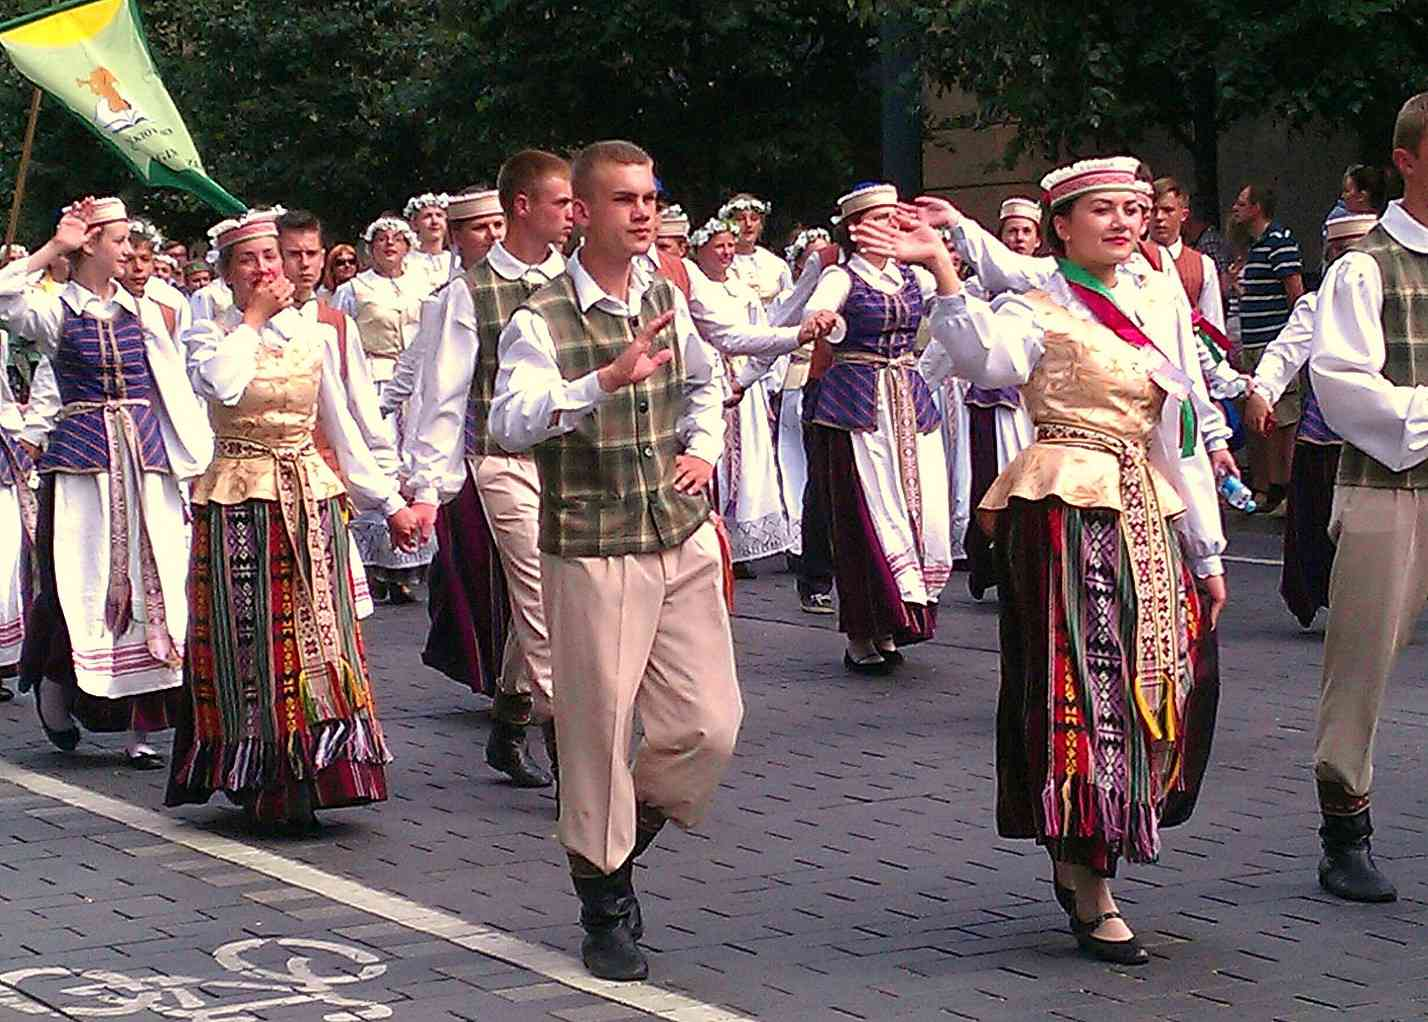 Lithuanians perform a ceremony in traditional dress